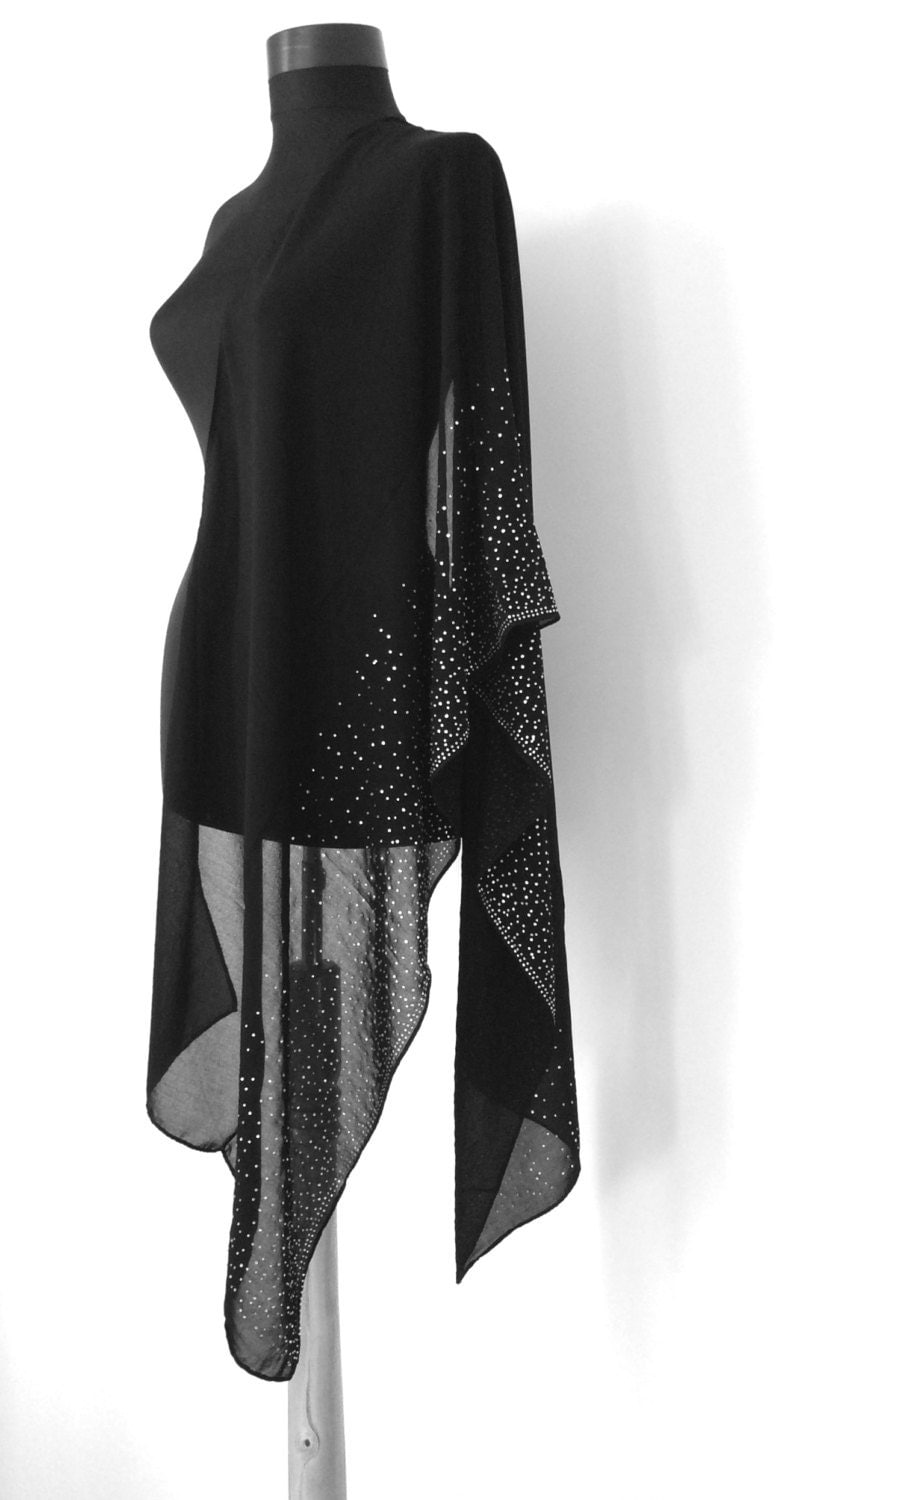 black shawl evening shawl chiffon scarf wedding shawl